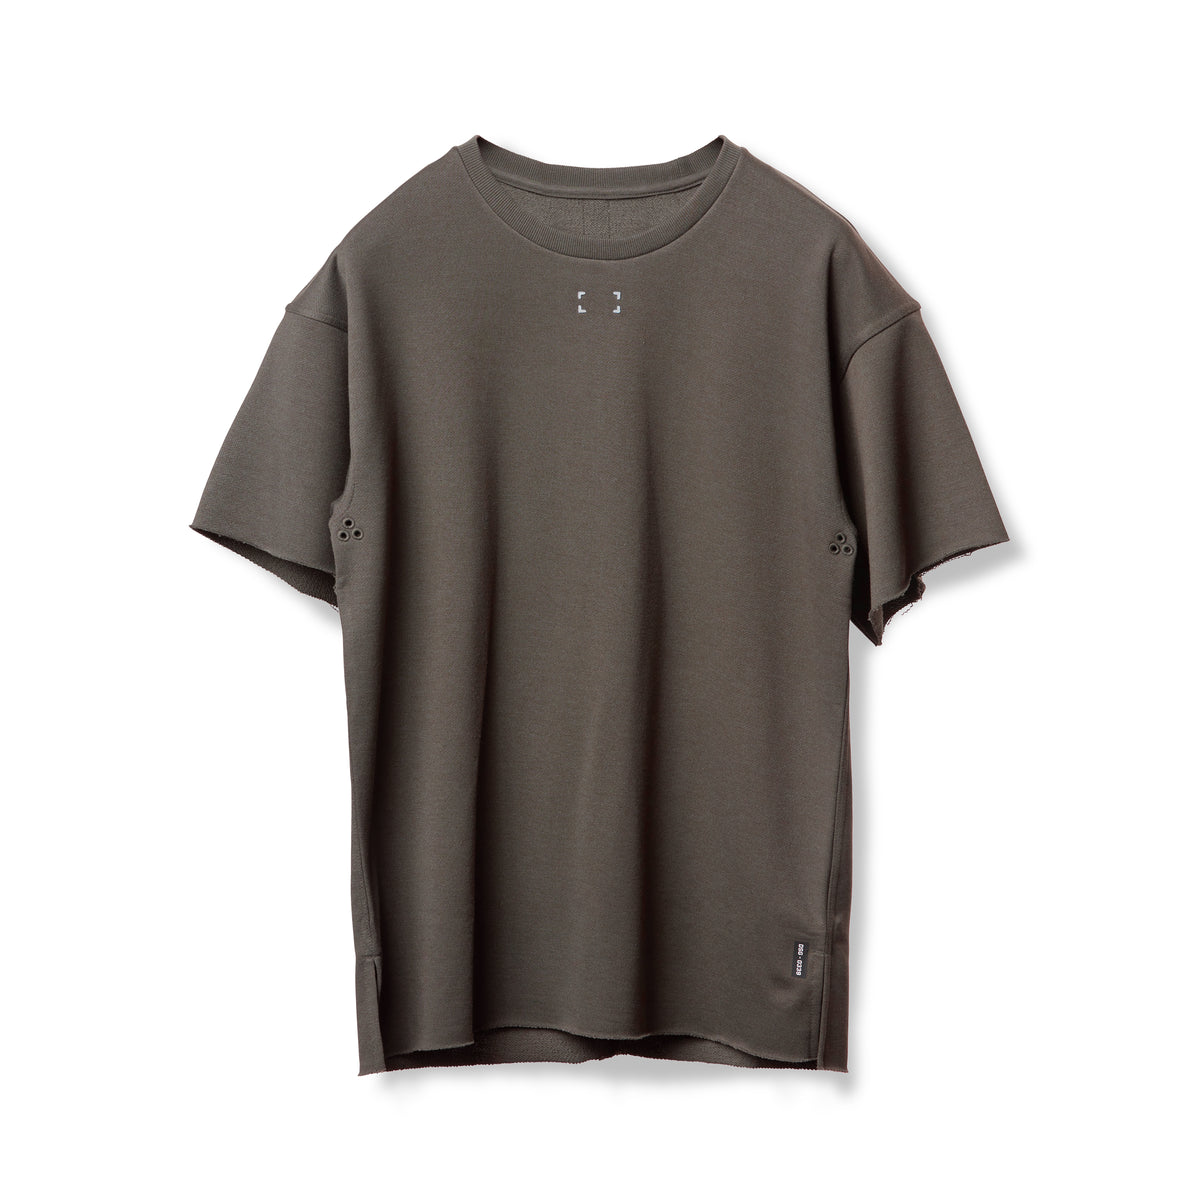 0339. French Terry Oversized Tee - Deep Taupe